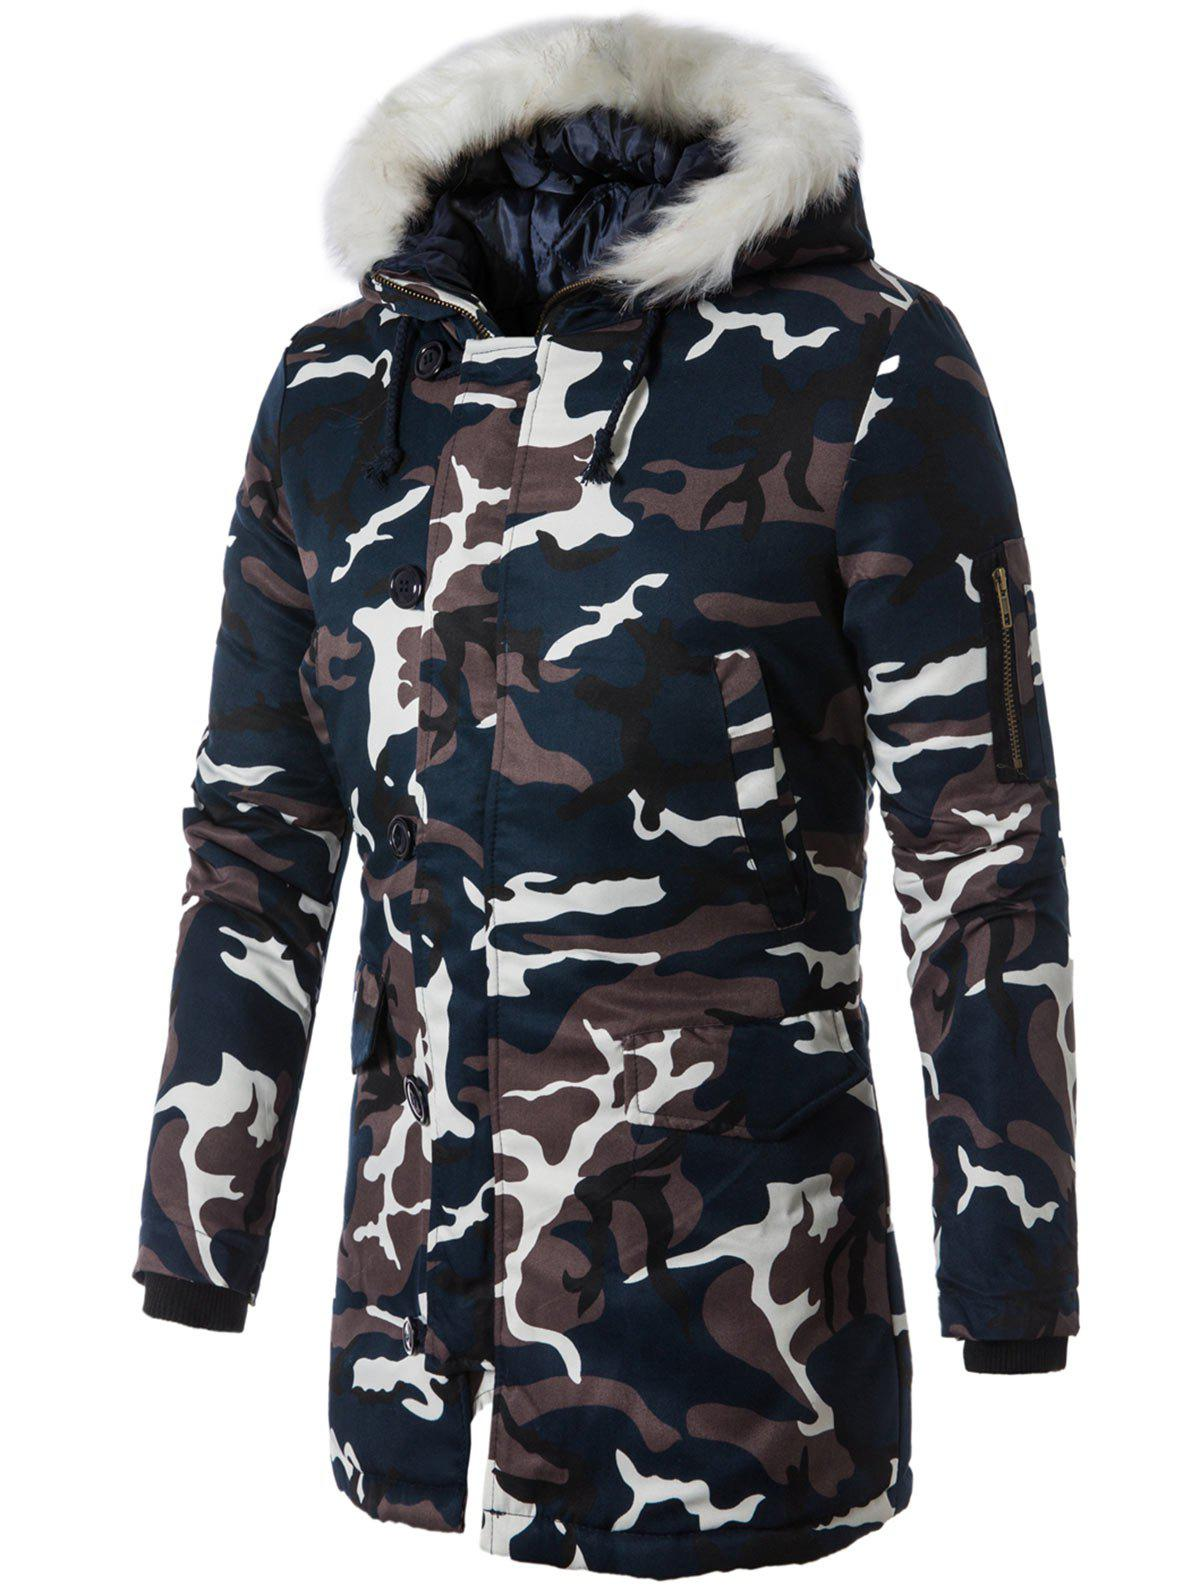 Zip Up Faux Fur Hooded Camouflage CoatMEN<br><br>Size: L; Color: PURPLISH BLUE; Clothes Type: Parkas; Style: Casual; Material: Cotton,Faux Fur,Polyester; Collar: Hooded; Shirt Length: Long; Sleeve Length: Long Sleeves; Season: Winter; Weight: 1.1000kg; Package Contents: 1 x Coat;